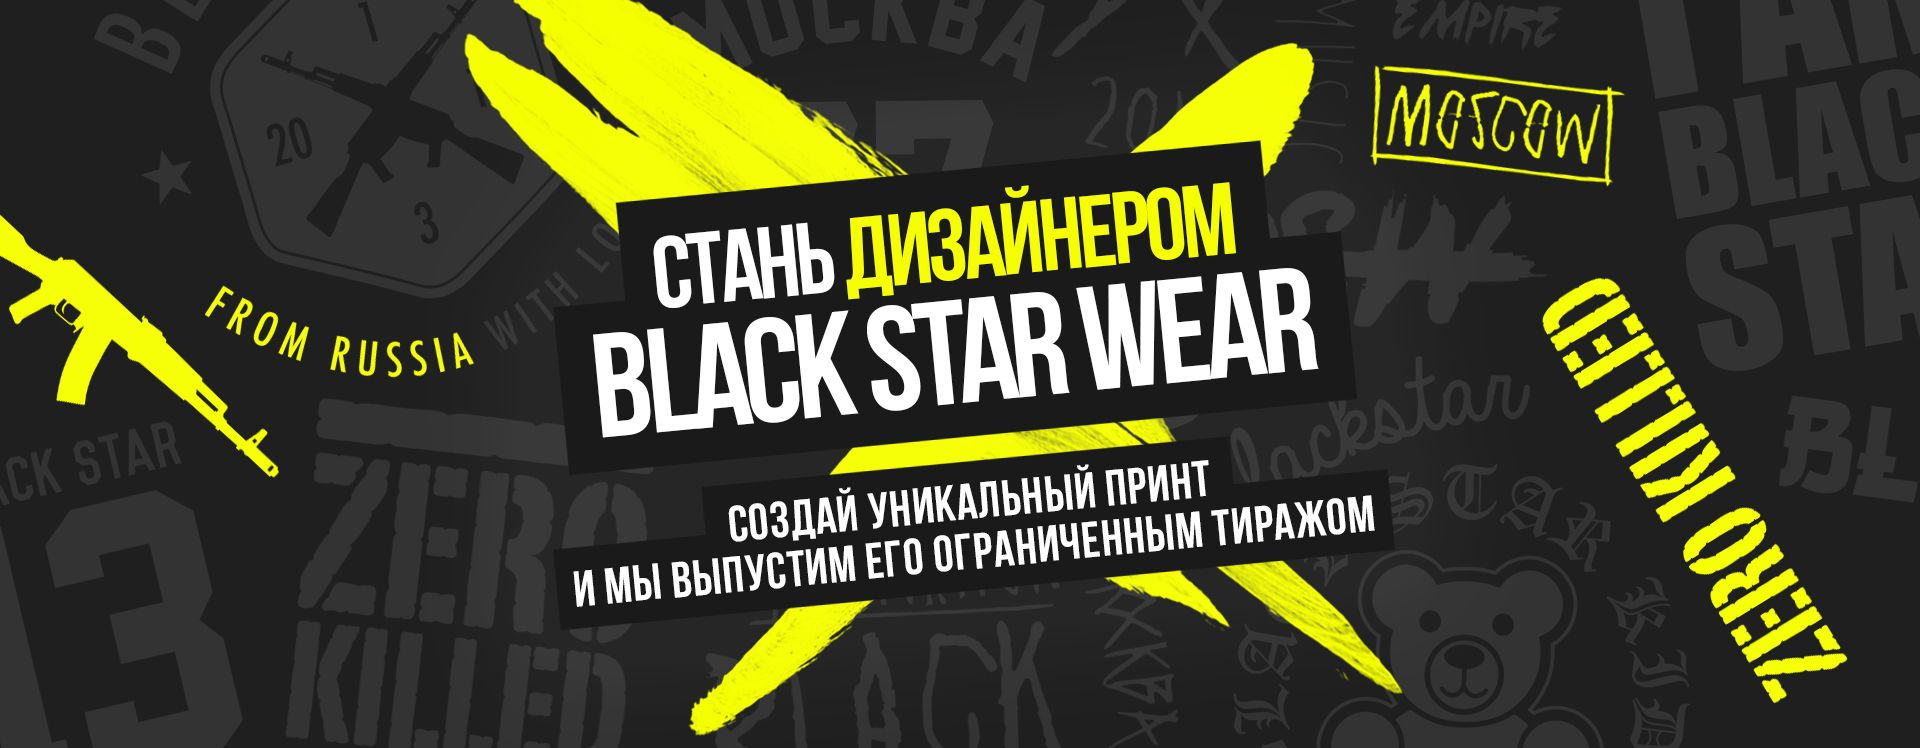 Стань дизайнером Black Star Wear!